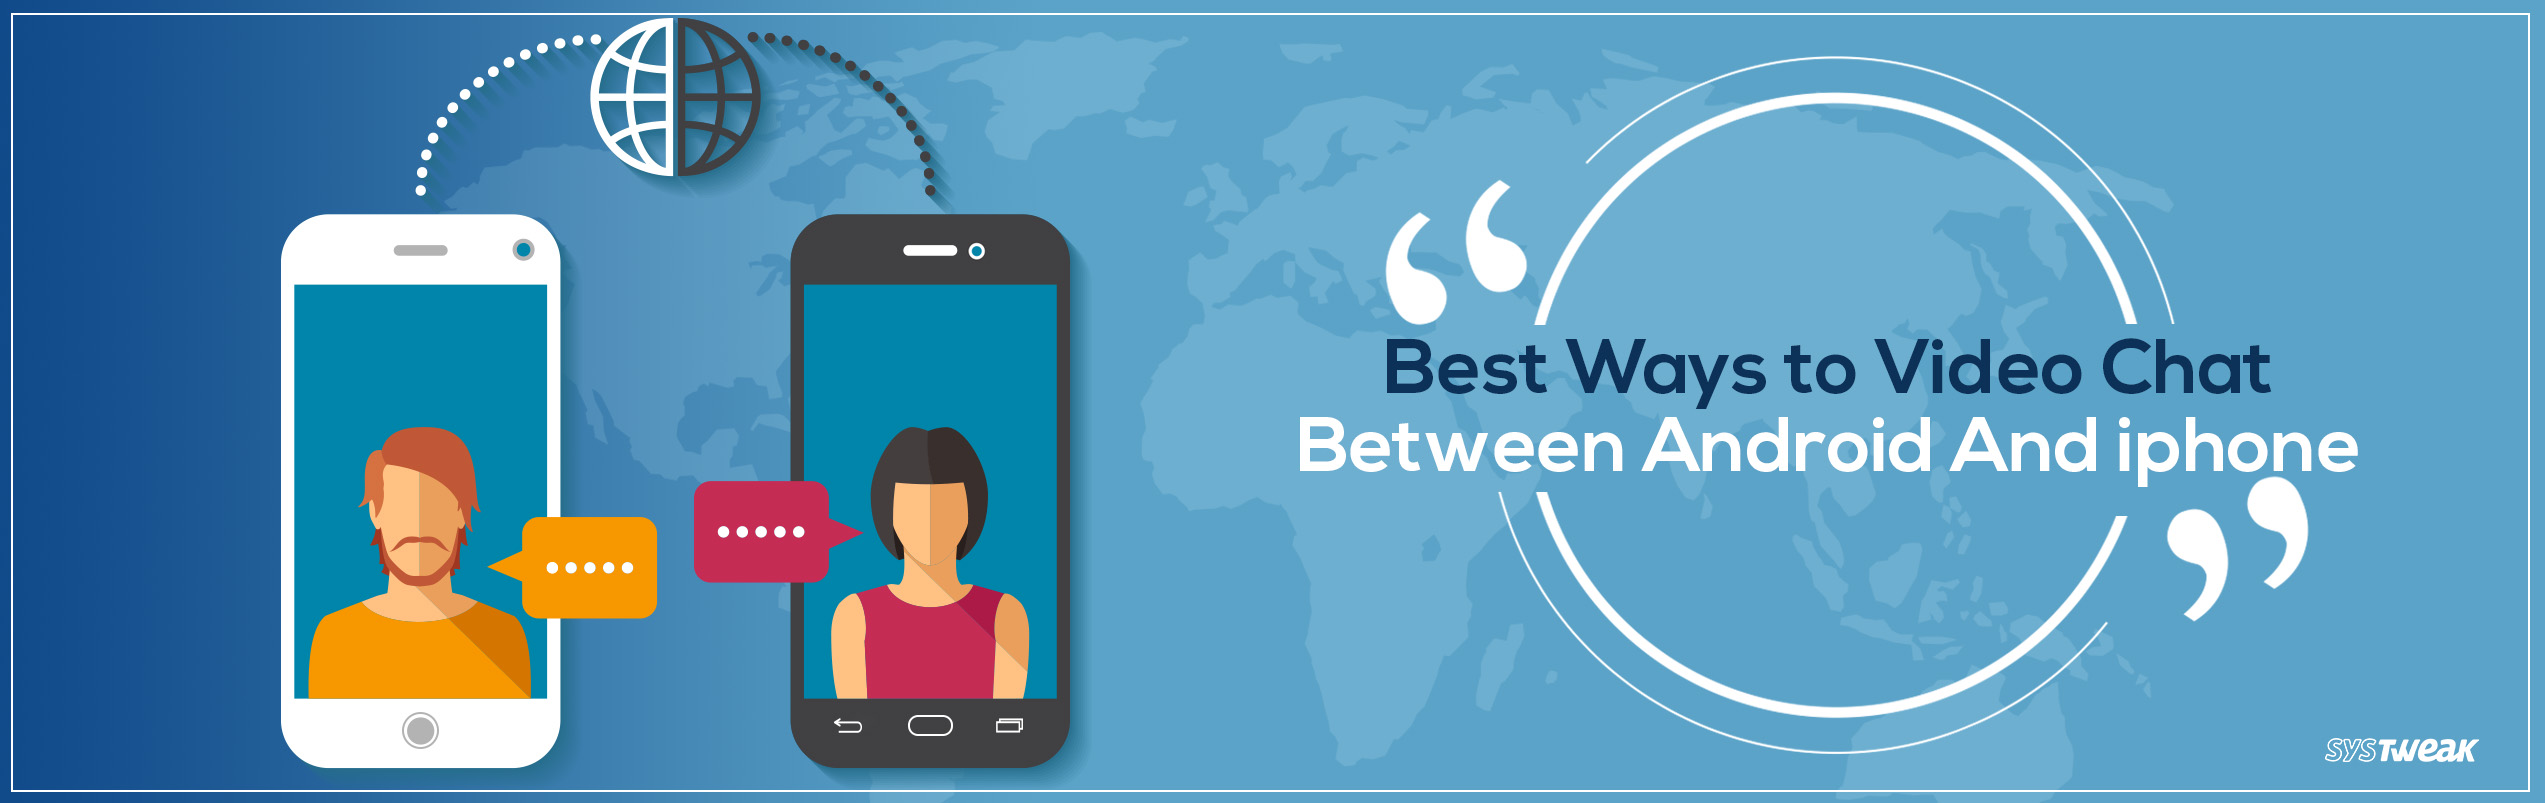 Best Ways To Video Chat Between Android And iphone